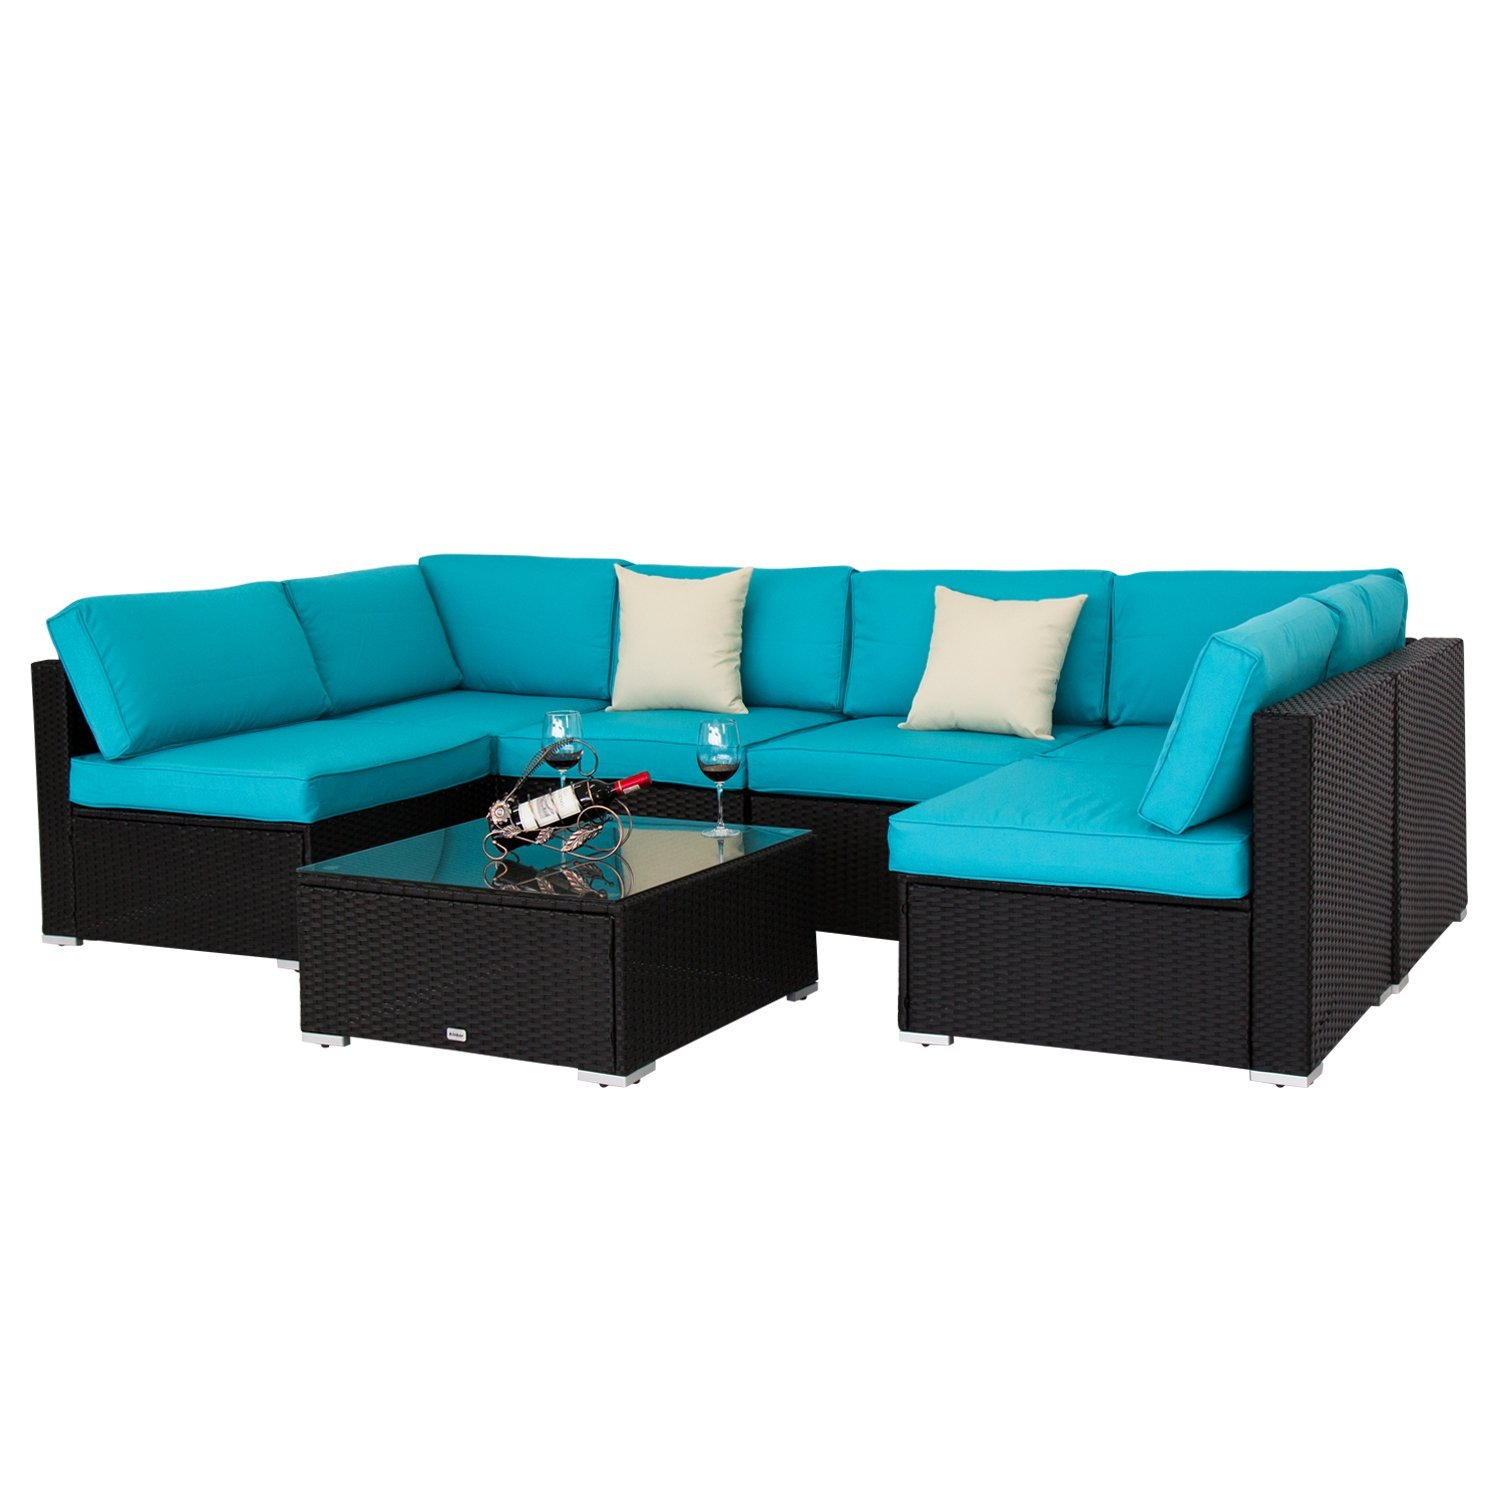 Best Sectional Sofas Under 1000 Best Cheap Reviews : Best Sectional Sofas Under 1000 from bestcheapreviews.com size 1500 x 1500 jpeg 136kB